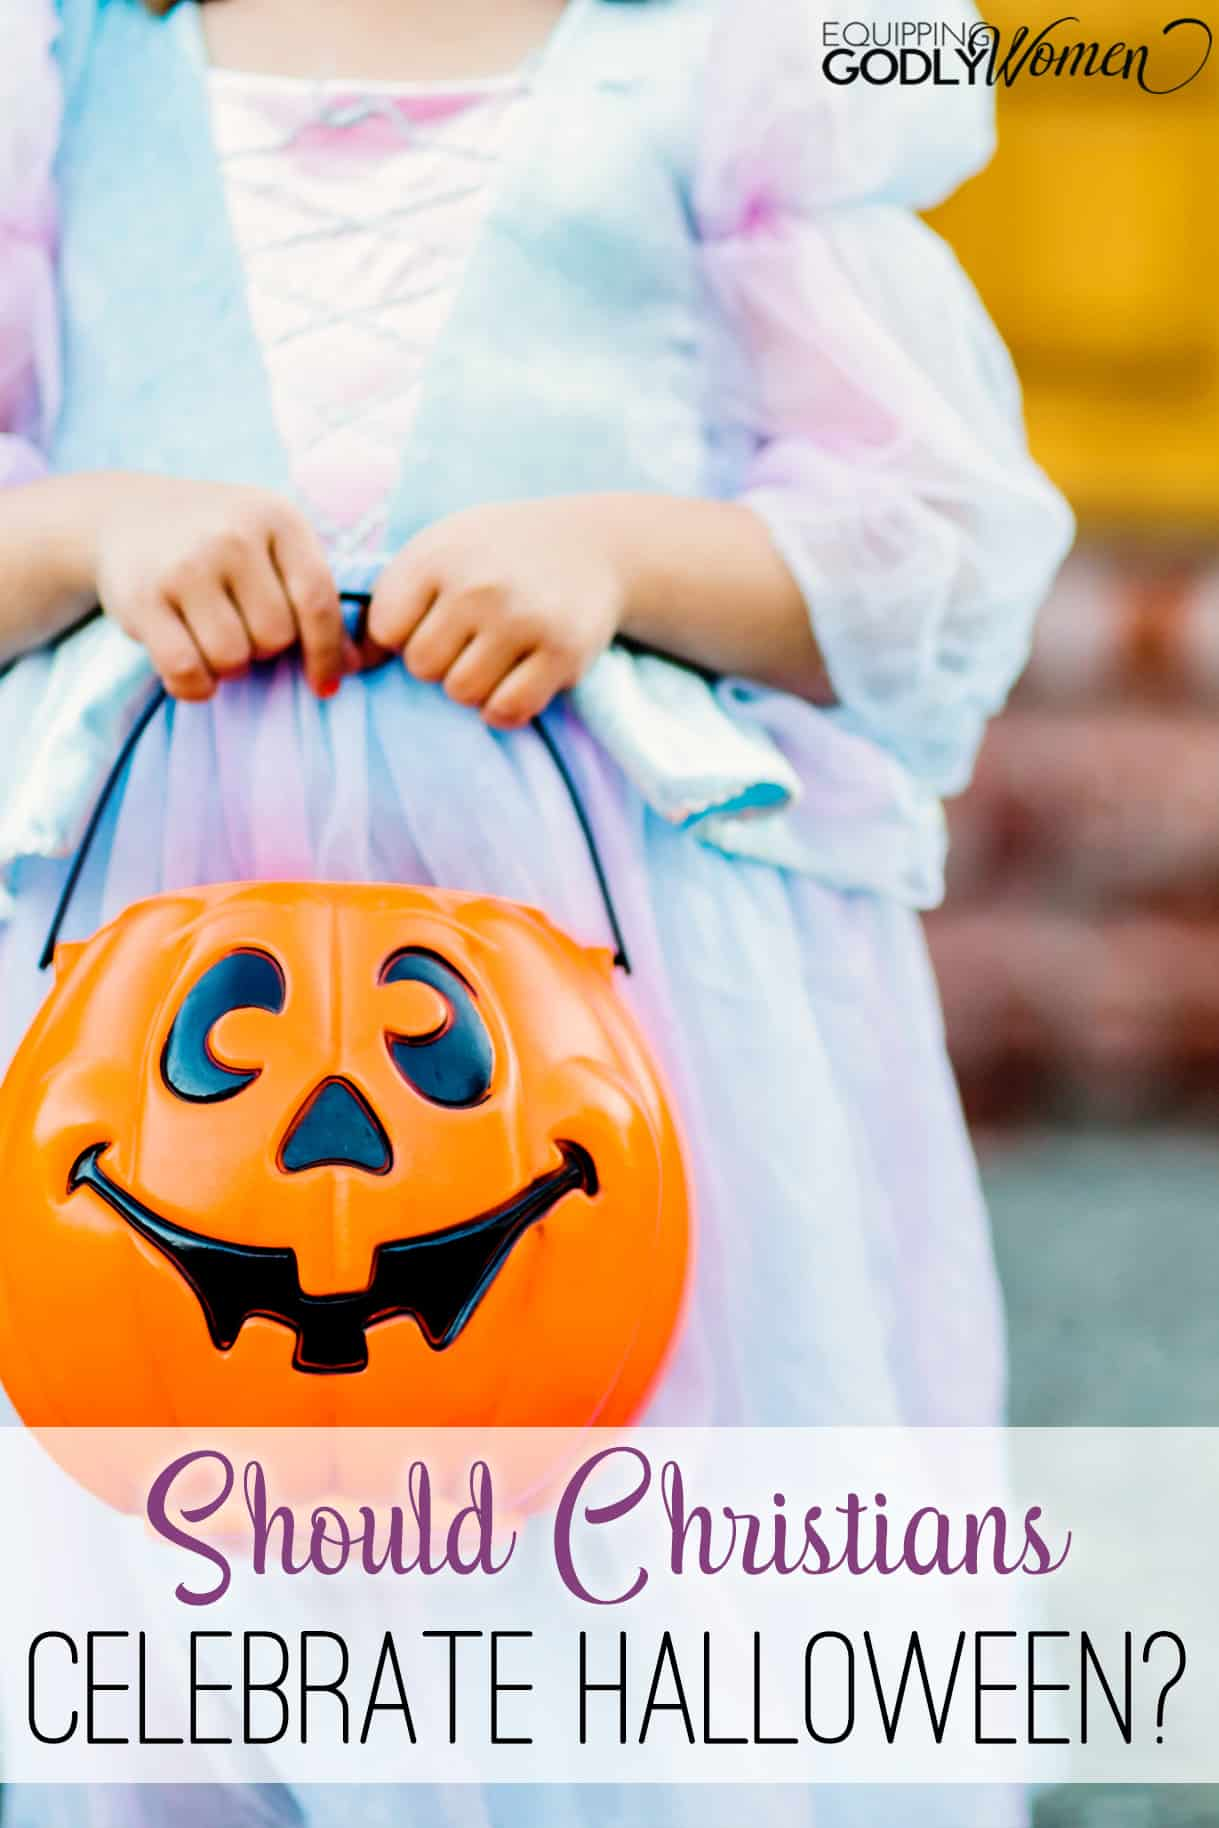 Should Christians participate in Halloween? This article has a balanced response.